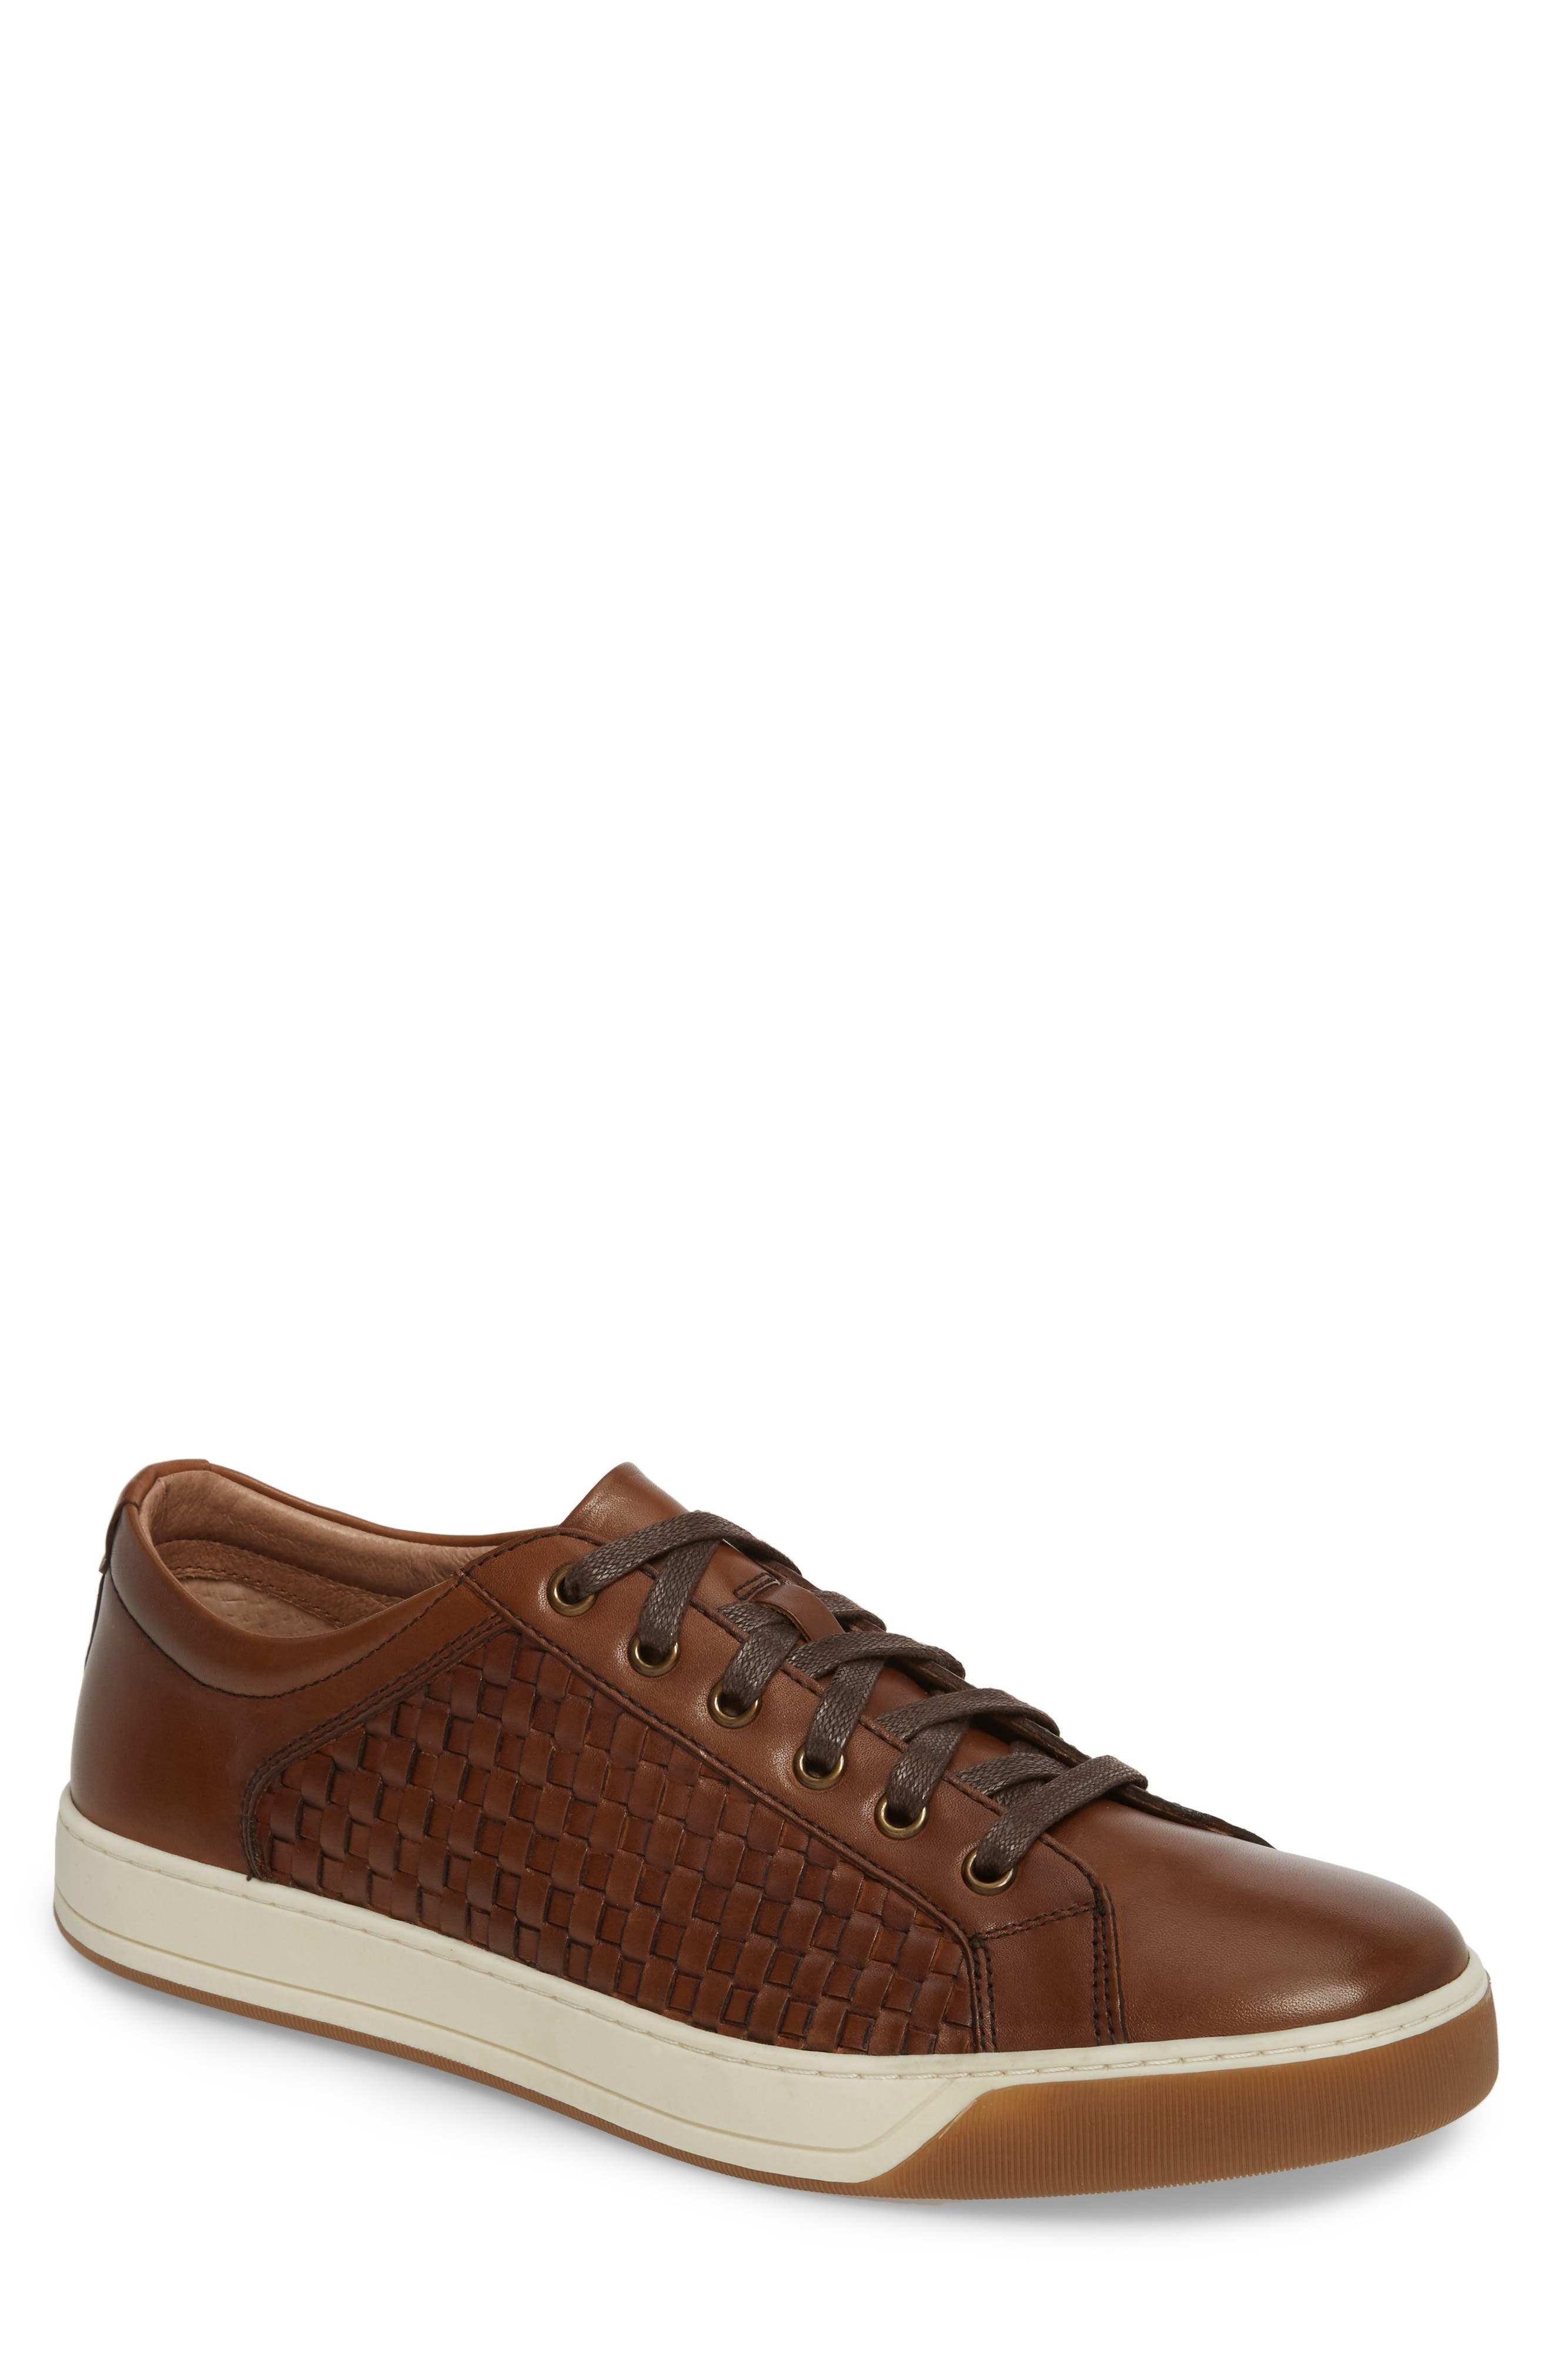 Allister Woven Low Top Sneaker,                             Main thumbnail 1, color,                             BROWN